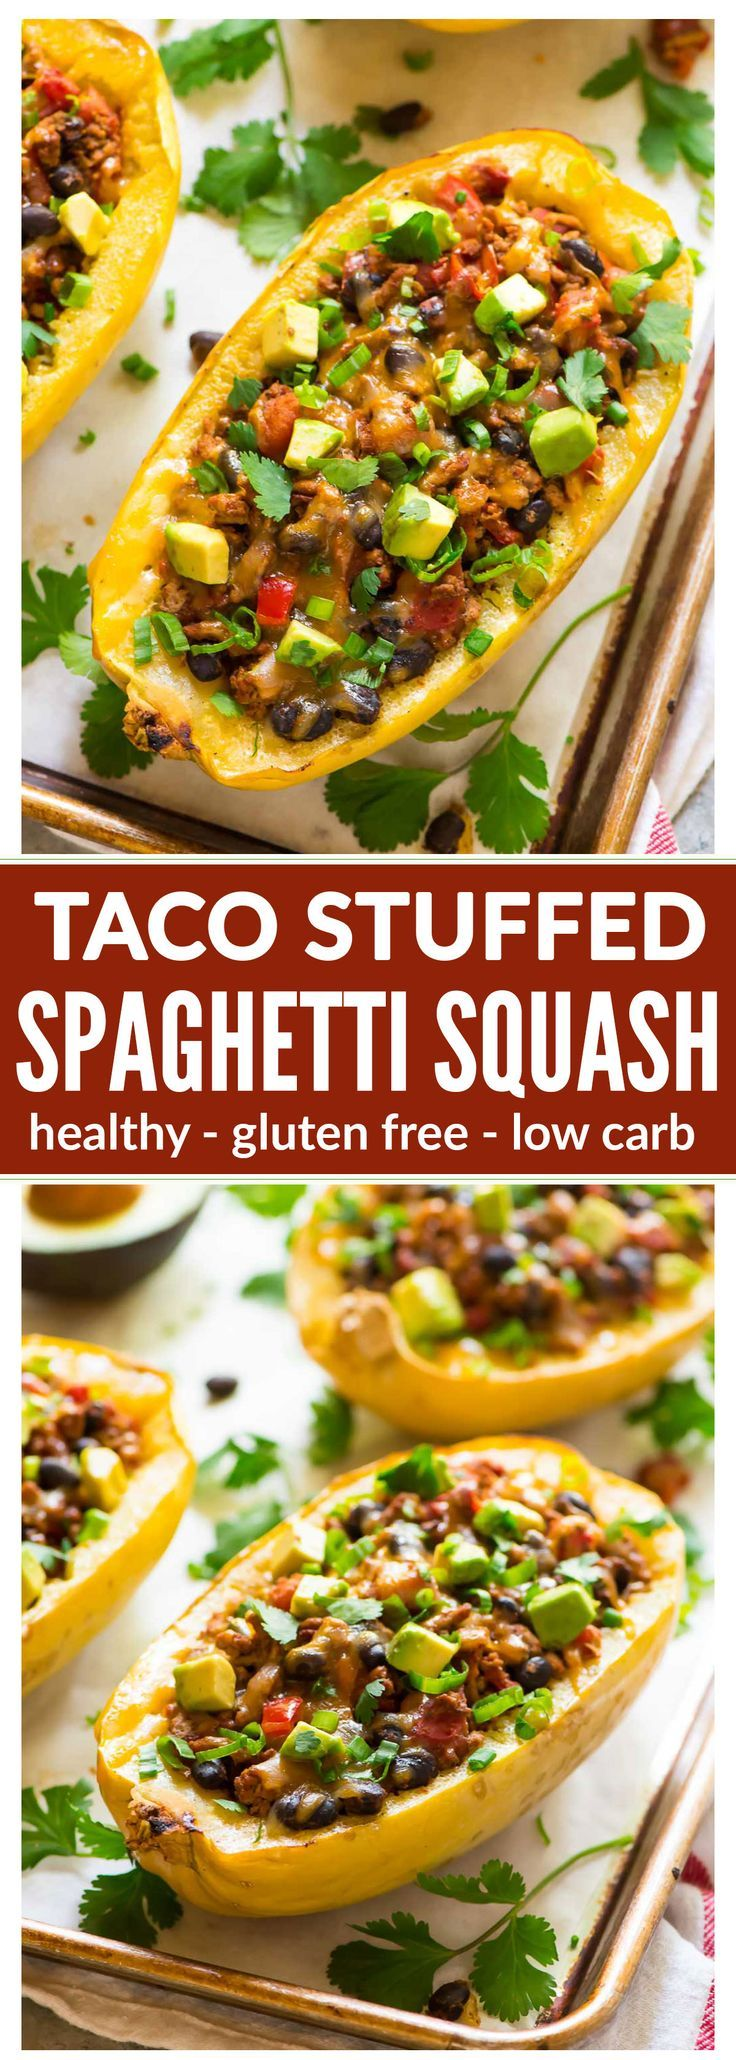 Healthy Taco Spaghetti Squash Boats with Cheese, Ground Turkey, and Black Beans. Easy, filling, and low carb! Great for busy families. Everyone loves this recipe! {gluten free}